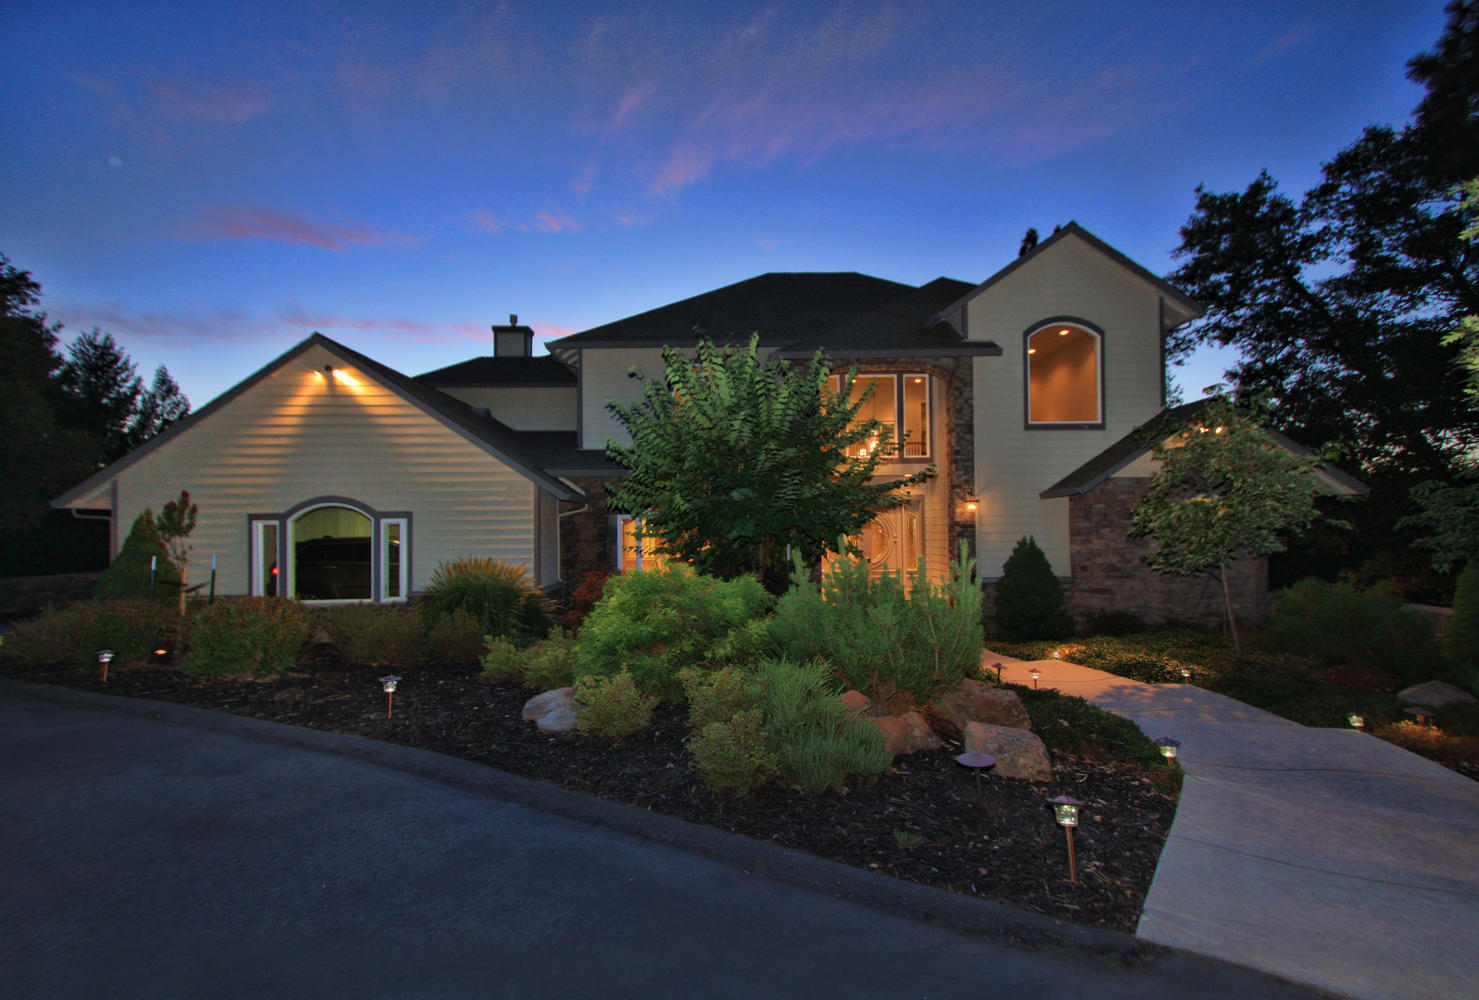 Single Family Home for Sale at Reeder Lane Pioneer, California, 95666 United States